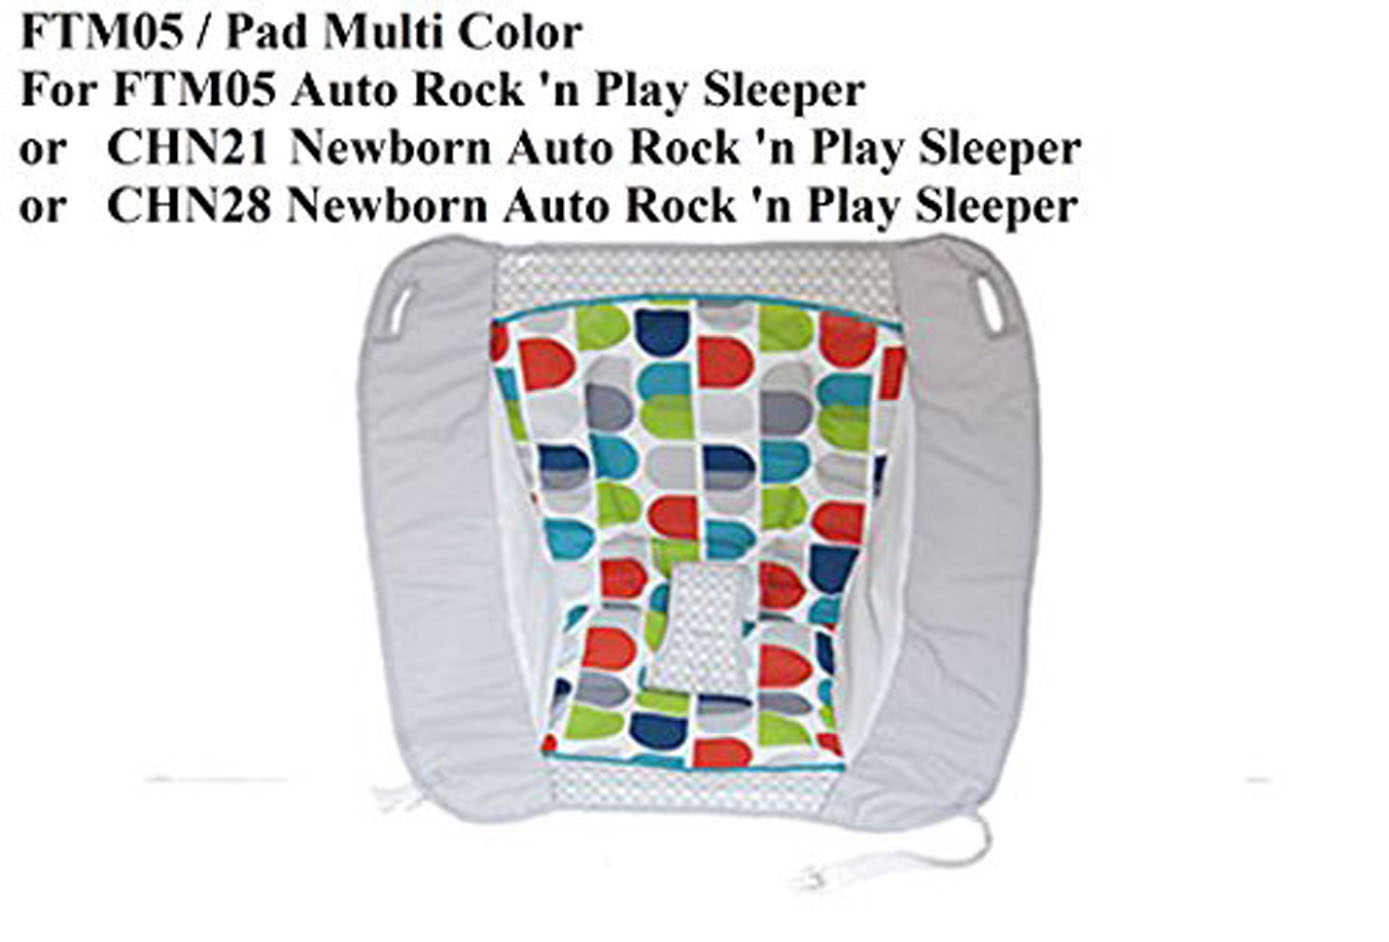 Replacement Pad For Fisher Price Rock N Play Sleeper Multi Colors Model Ftm05 Ele Toys Llc